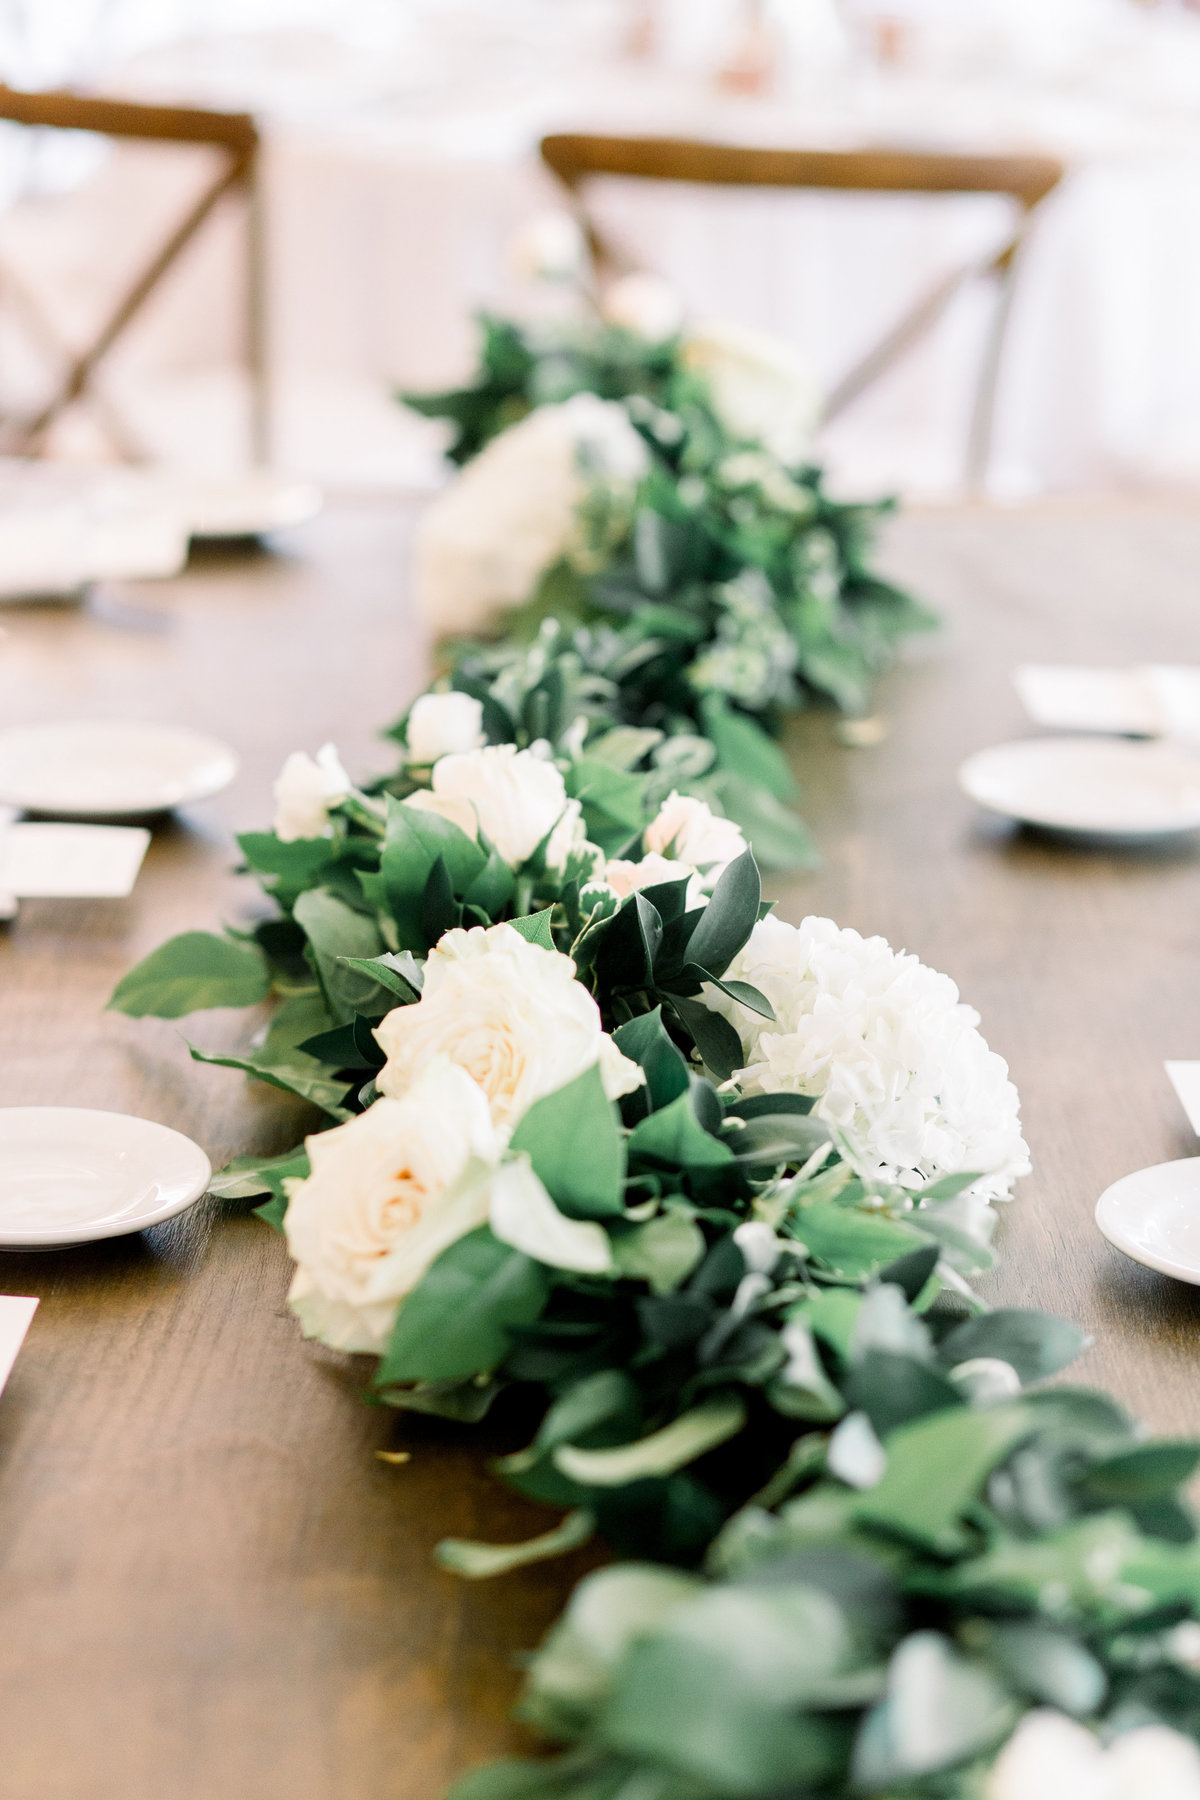 Close up of garland as a table runner at a wedding tablescape